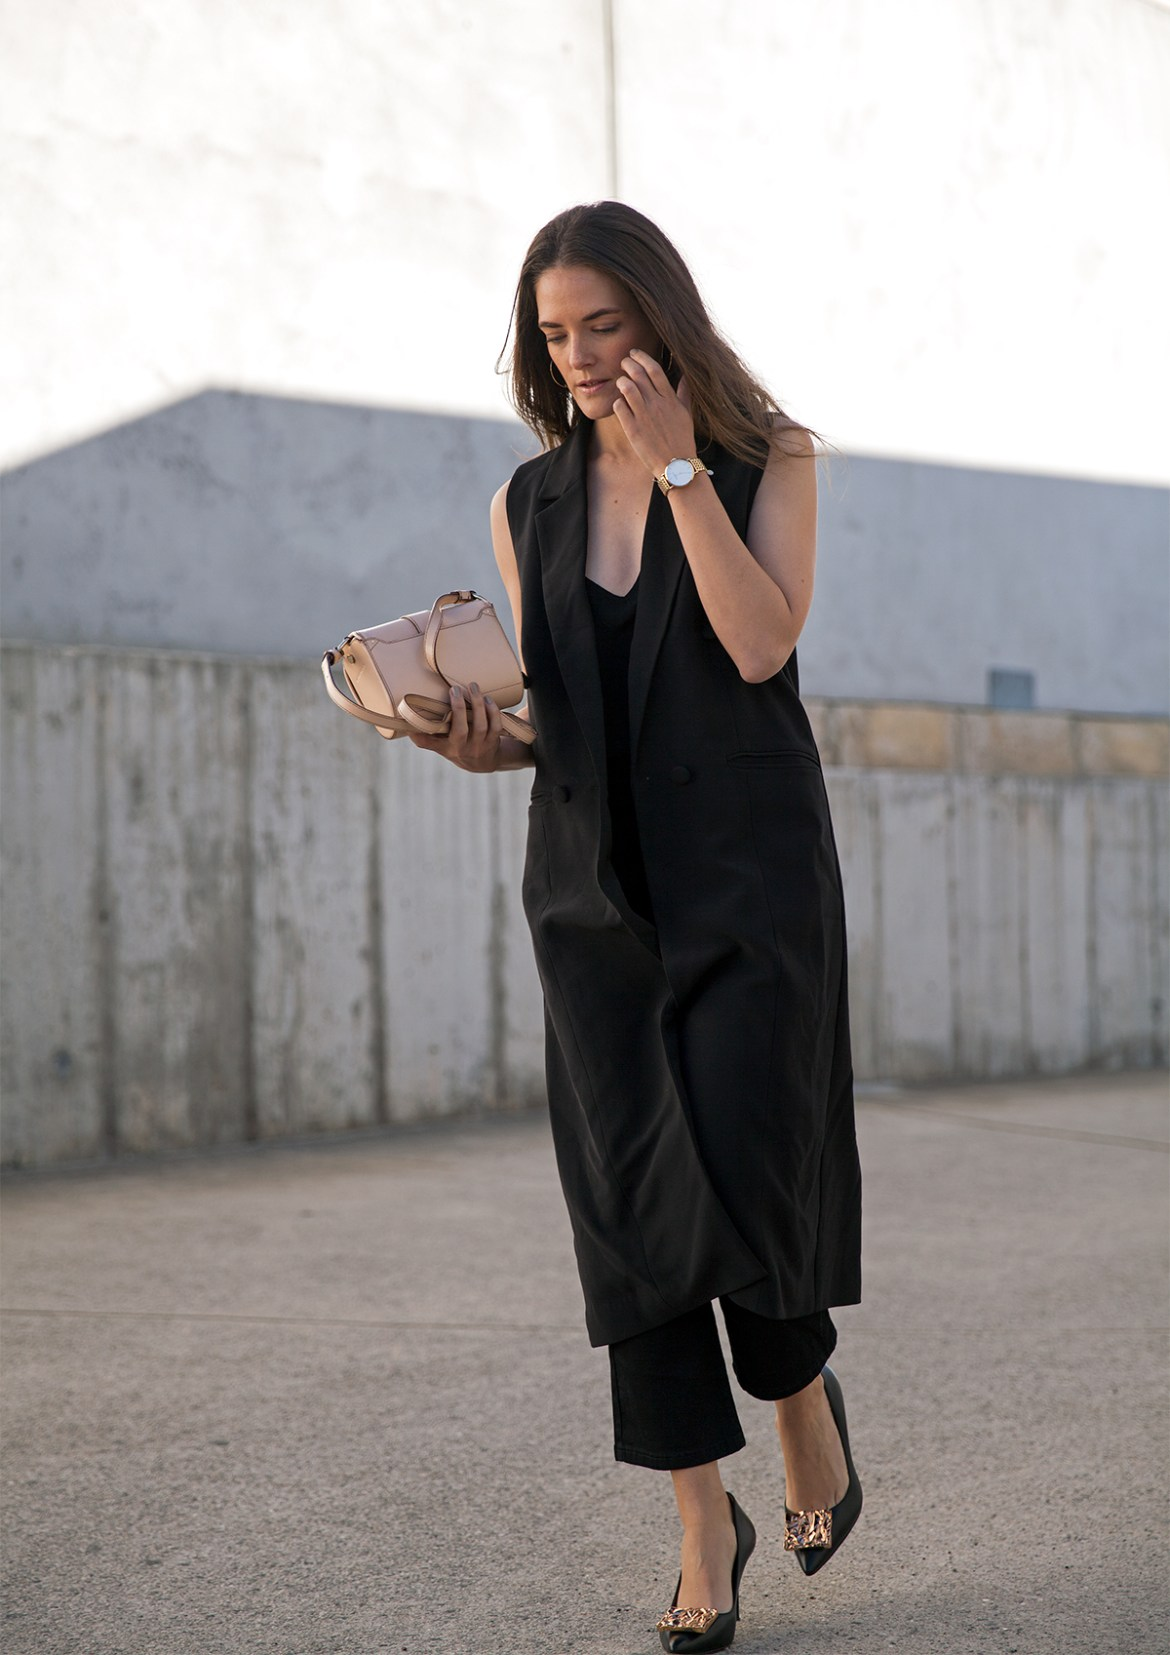 sleeveless coat BC the label Ari longline vest worn by fashion blogger Jenelle Witty from Inspiring Wit blog